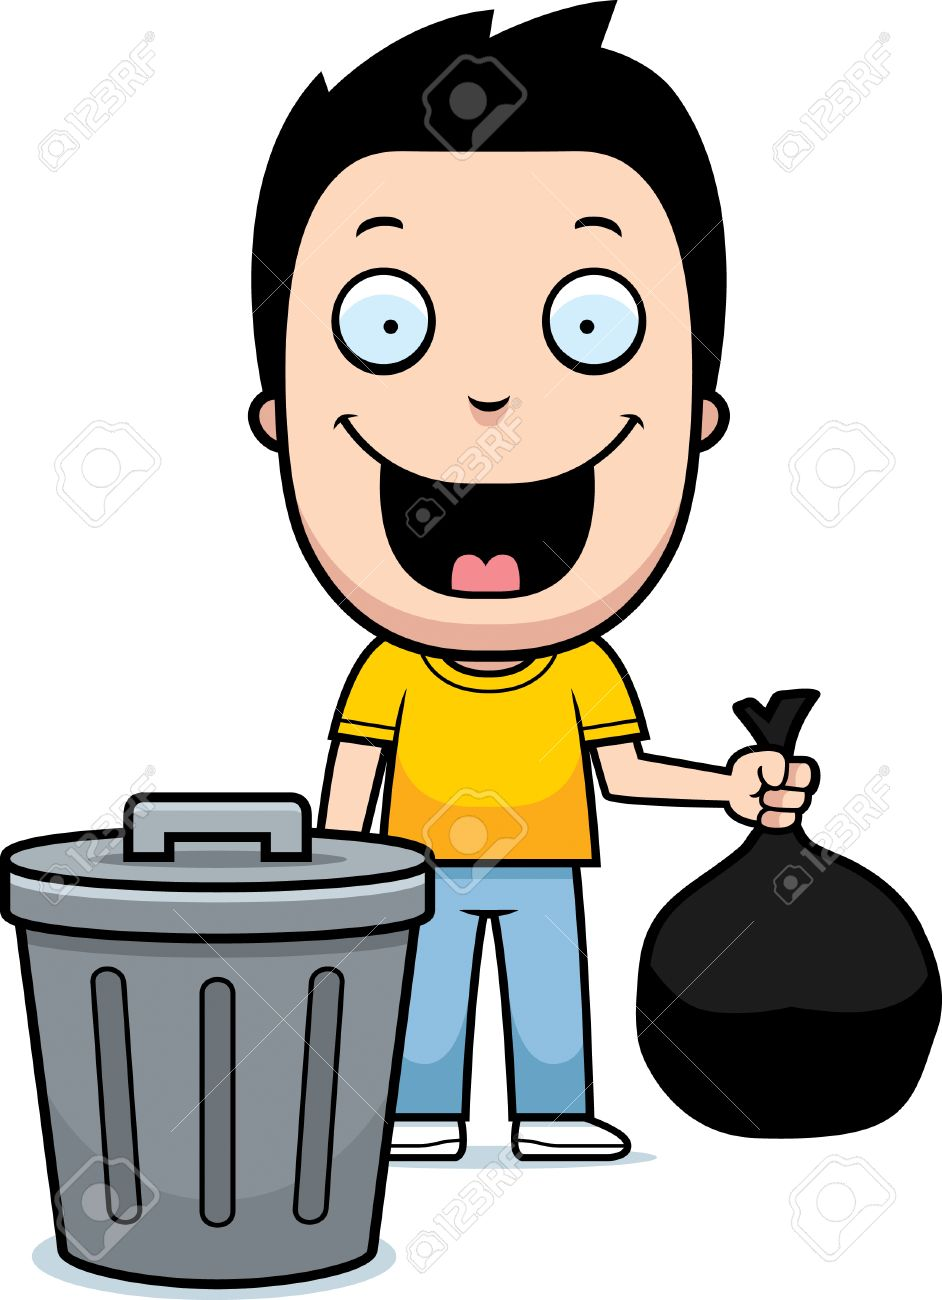 a happy cartoon boy taking out the trash royalty free cliparts rh 123rf com Sunshine Smiley Face Clip Art Laughing Smiley Face Clip Art